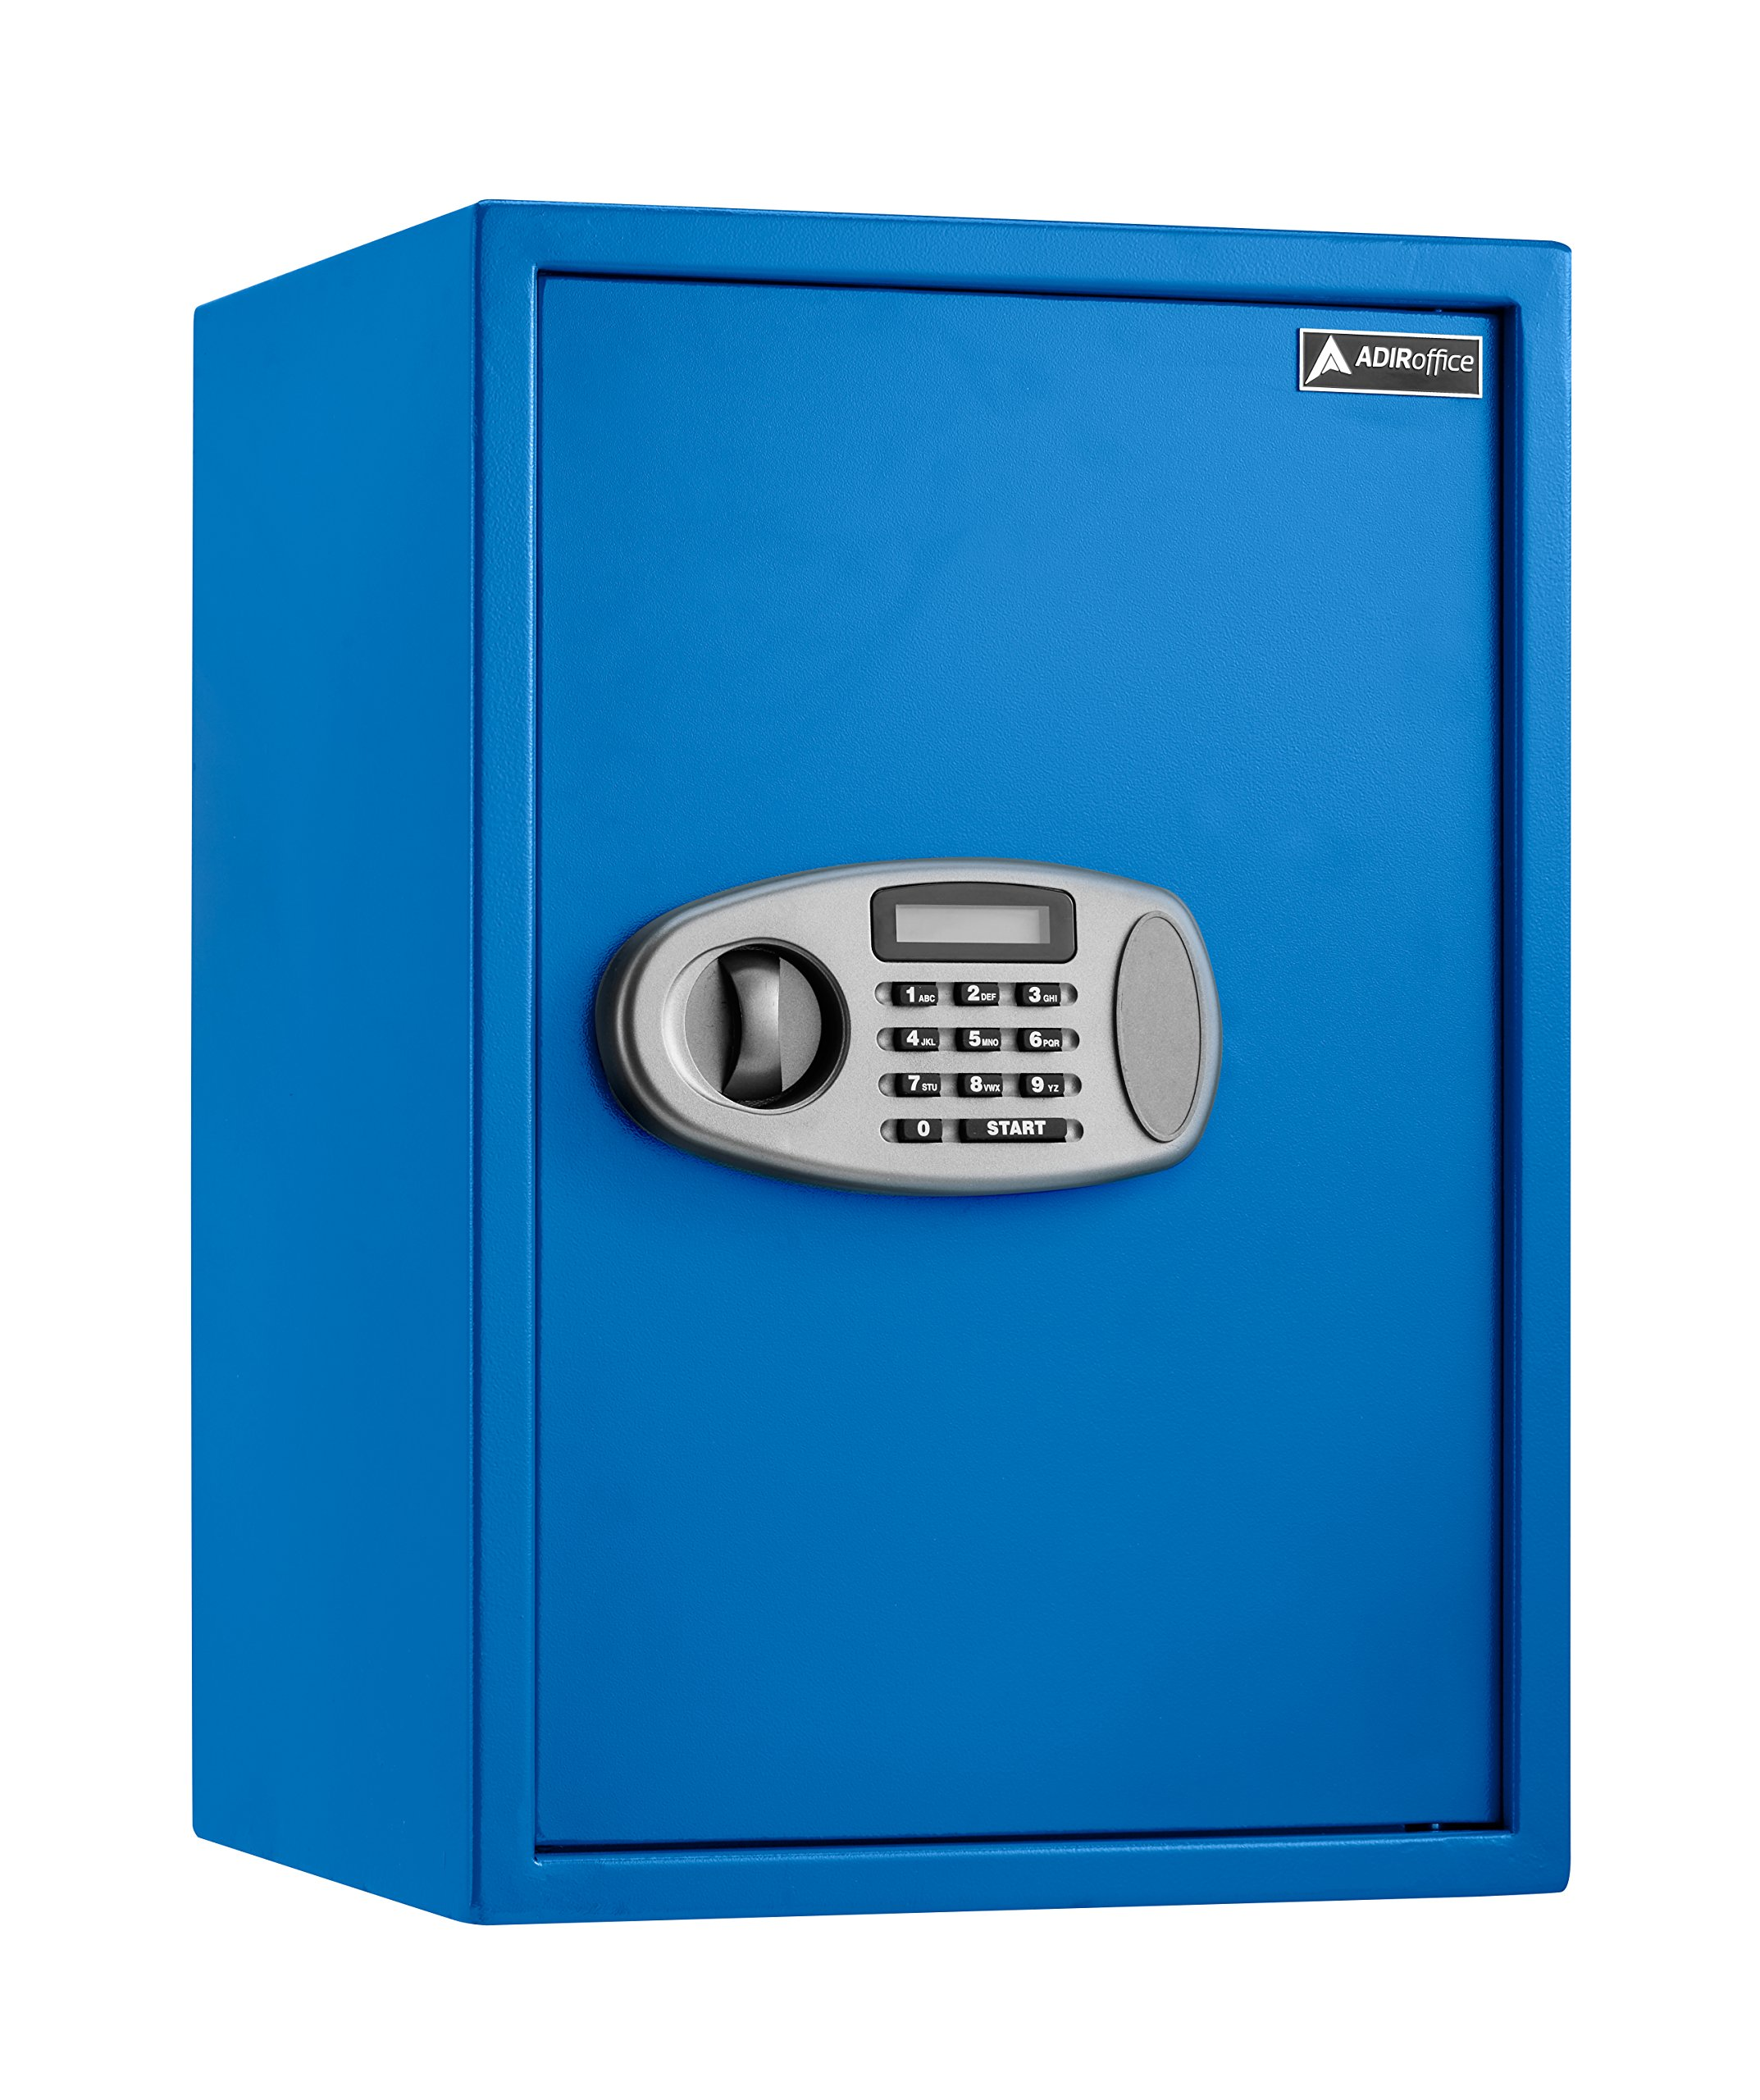 AdirOffice Security Safe with Digital Lock (2.32 Cubic Feet, Blue)